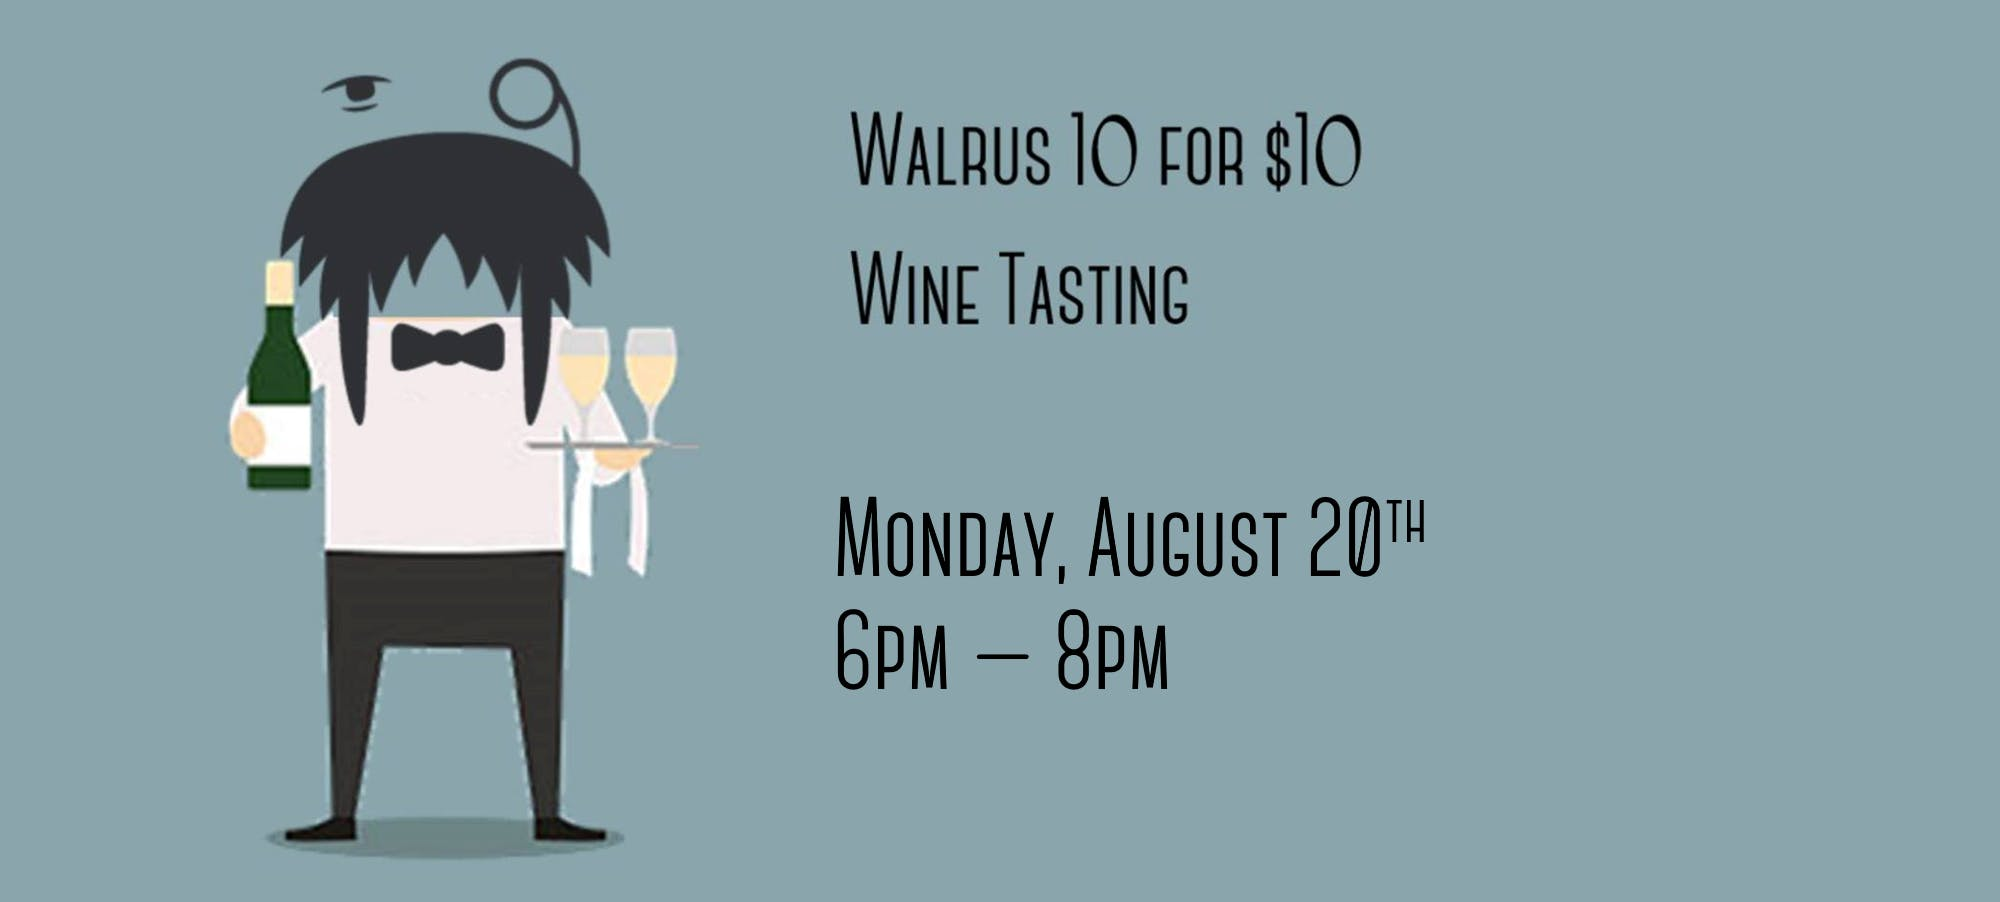 Walrus 10 for $10 Wine Tasting - August Editi